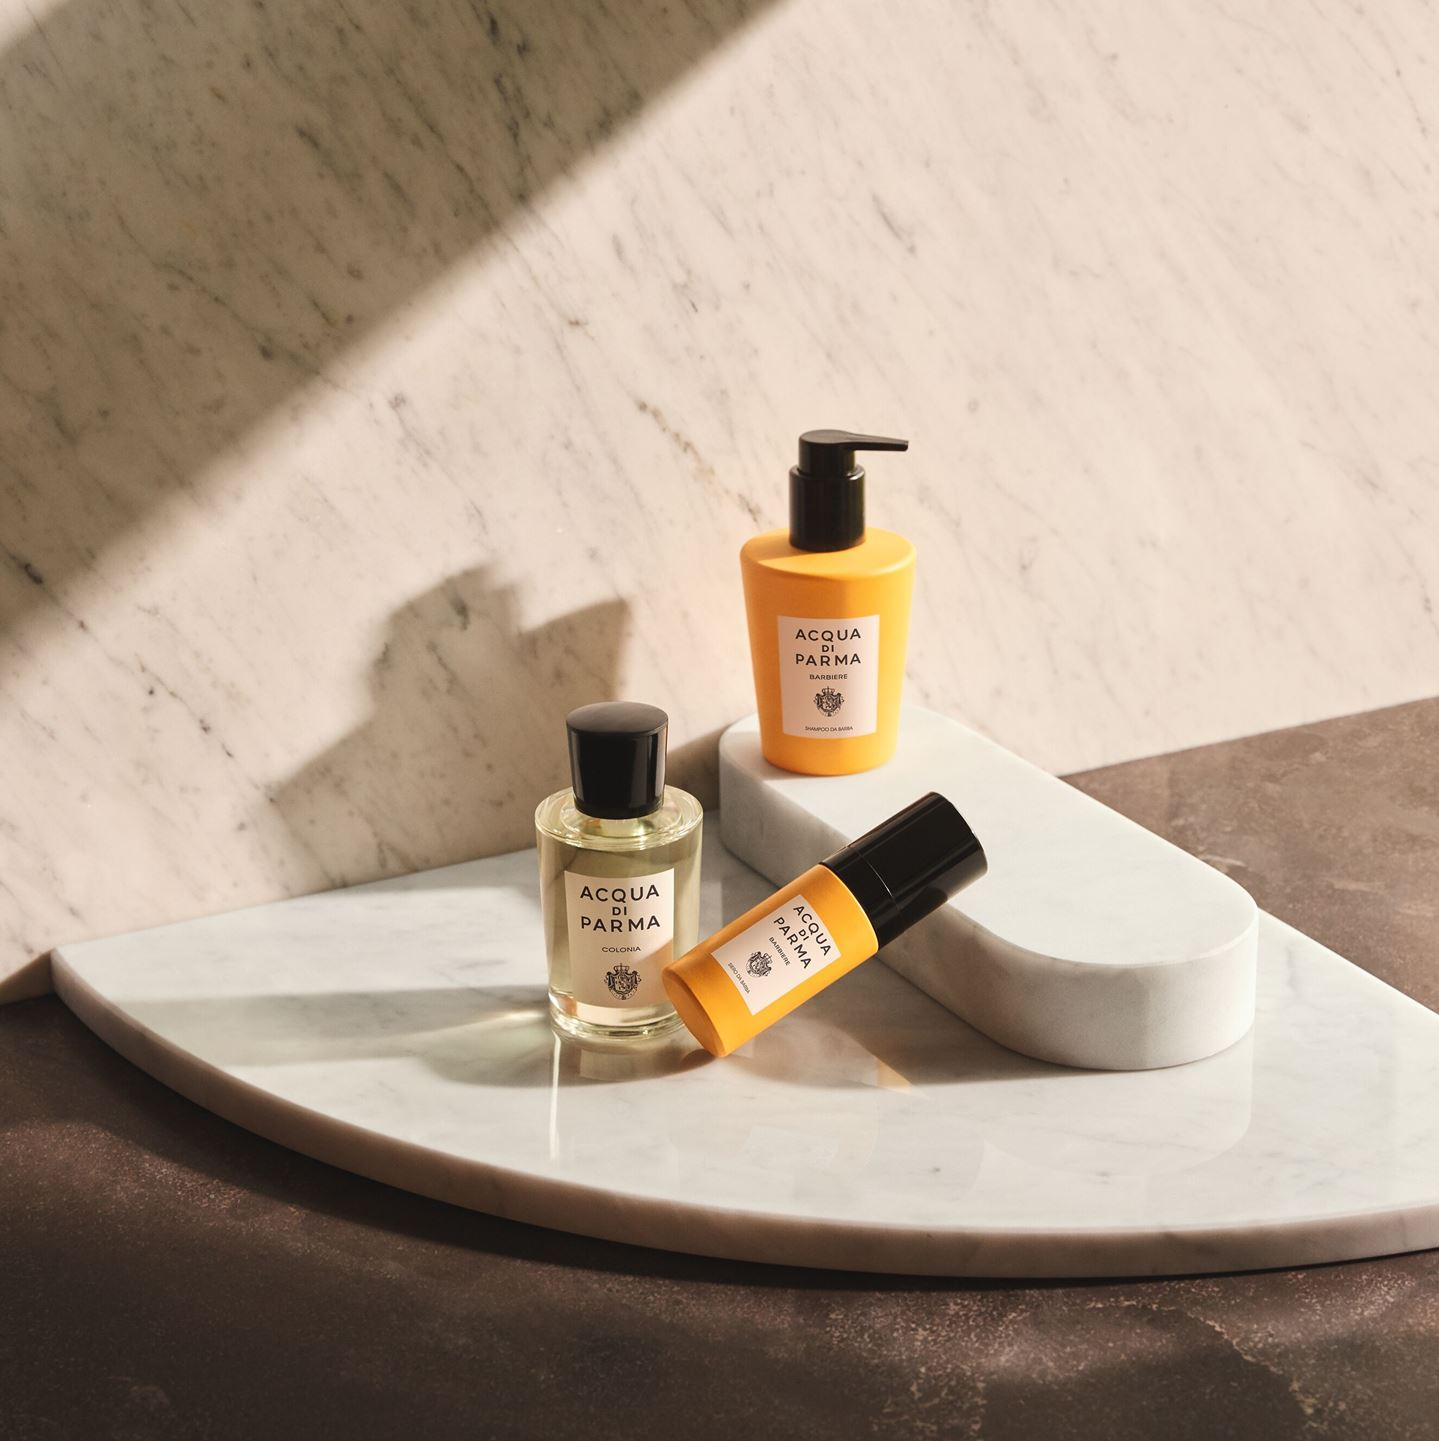 acquadiparma-adp-39l-barbiere-s25-stilllife-016-8918